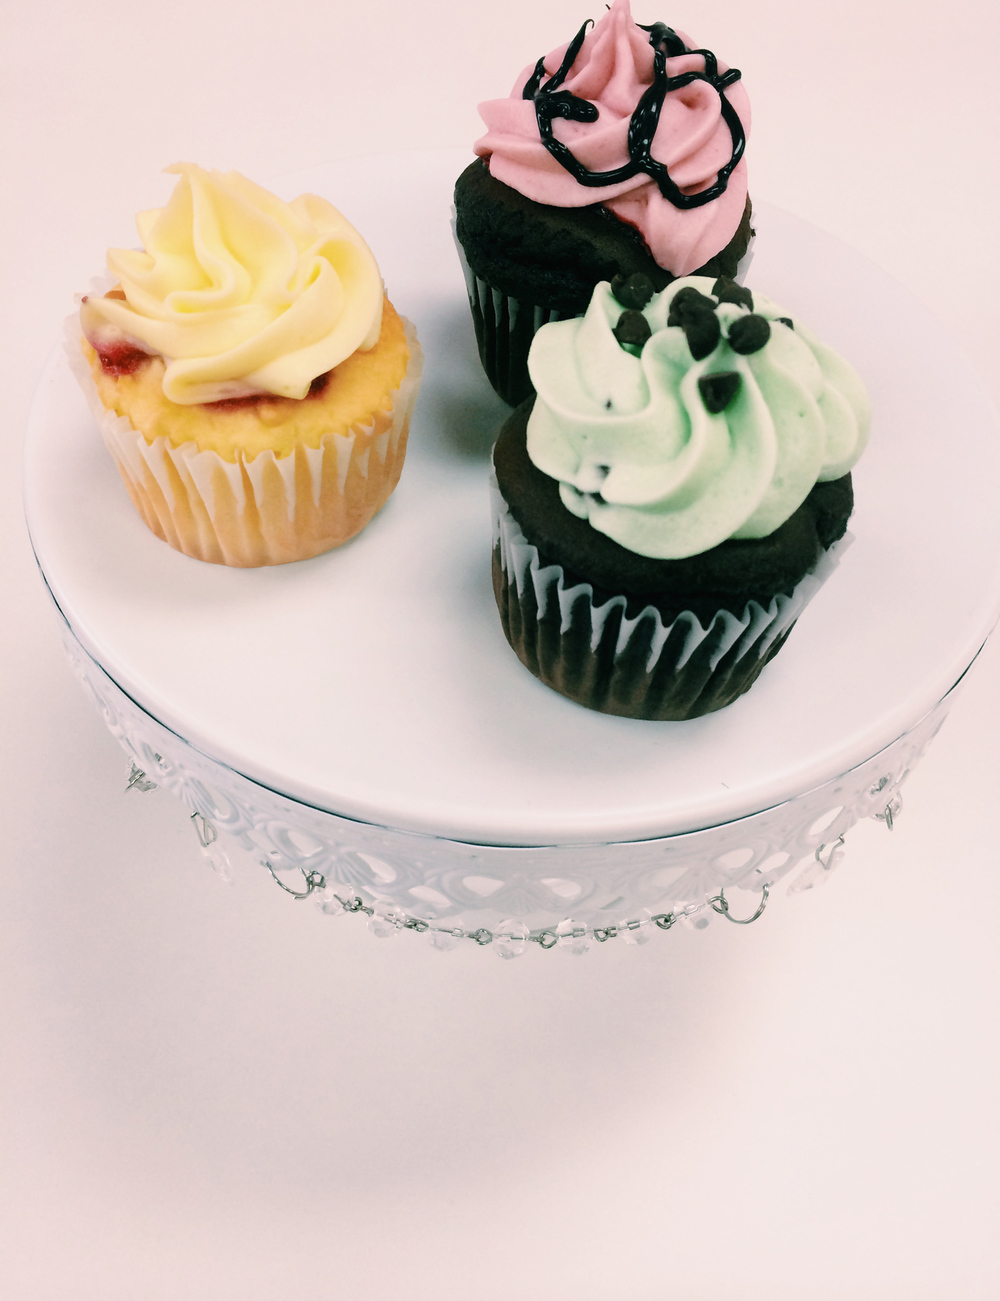 Lemon Creme, Raspberry Chocolate Fudge, and Mint Chocolate Chip